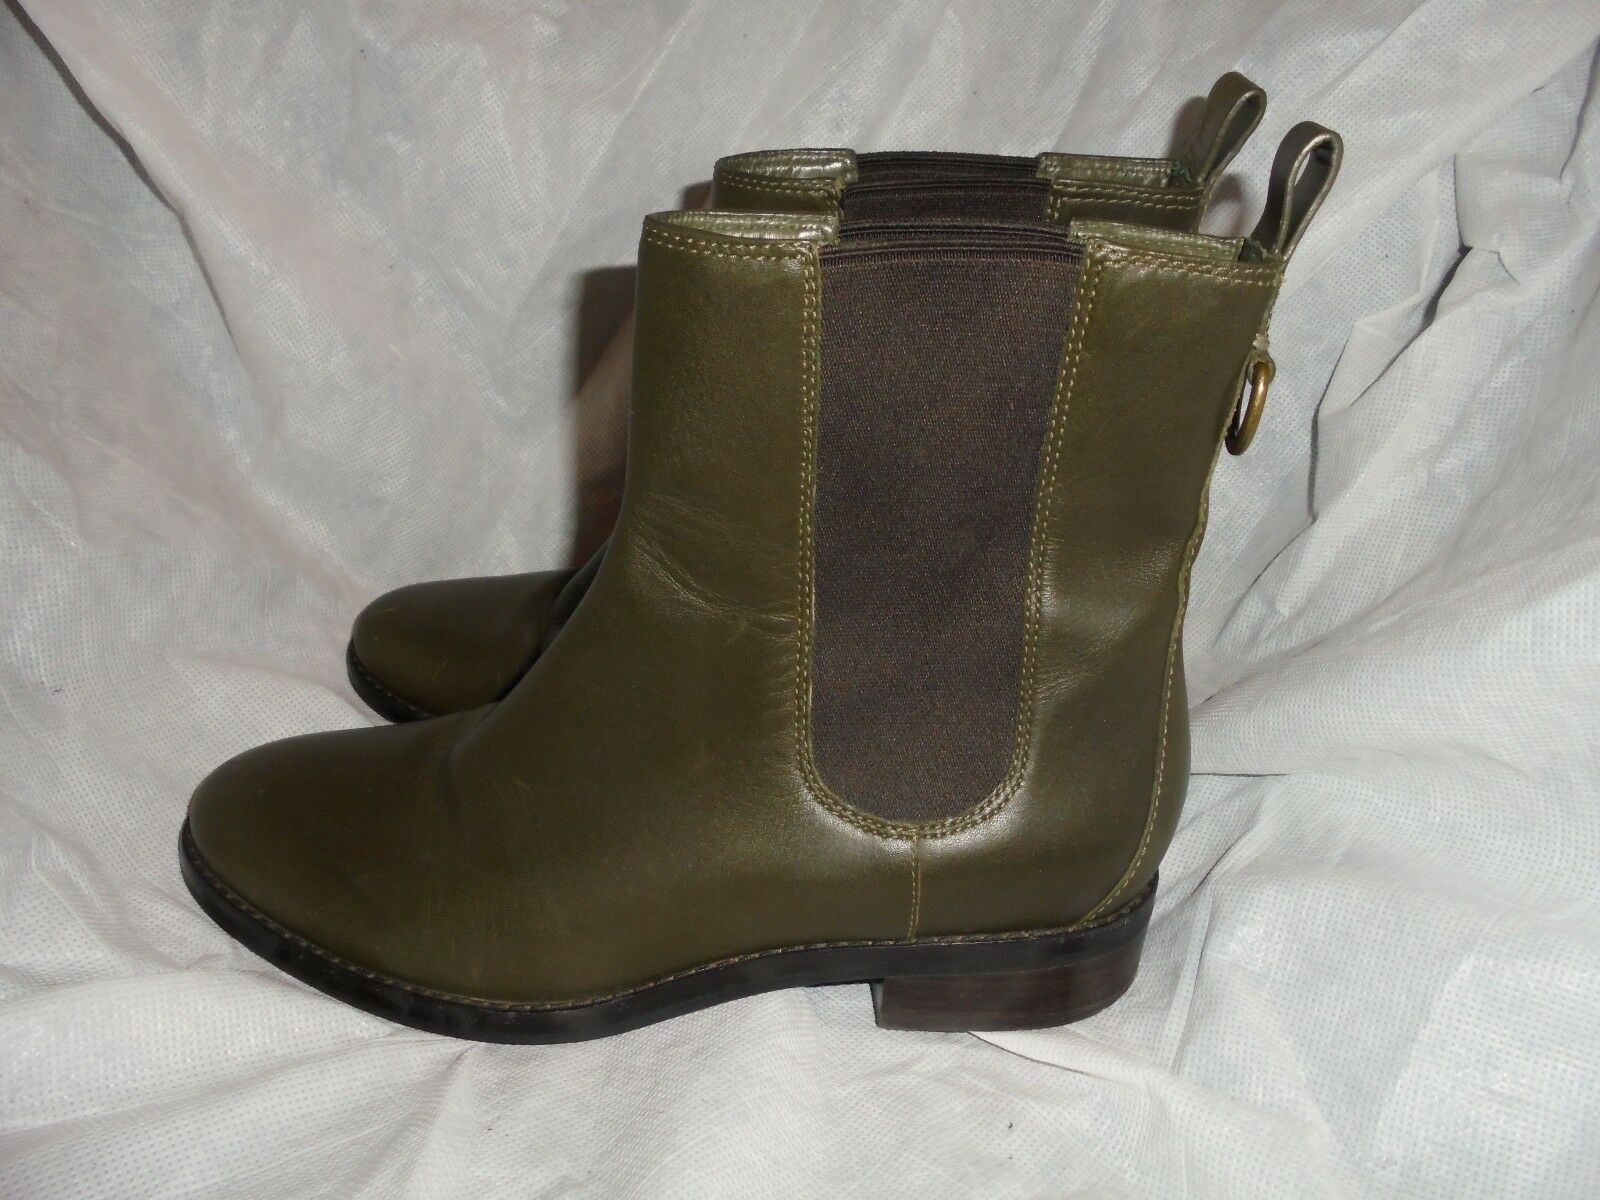 COLE HAAN donna OLIVE LEATHER PULL ON ANKLE avvio Dimensione EU 38 US 8 VGC